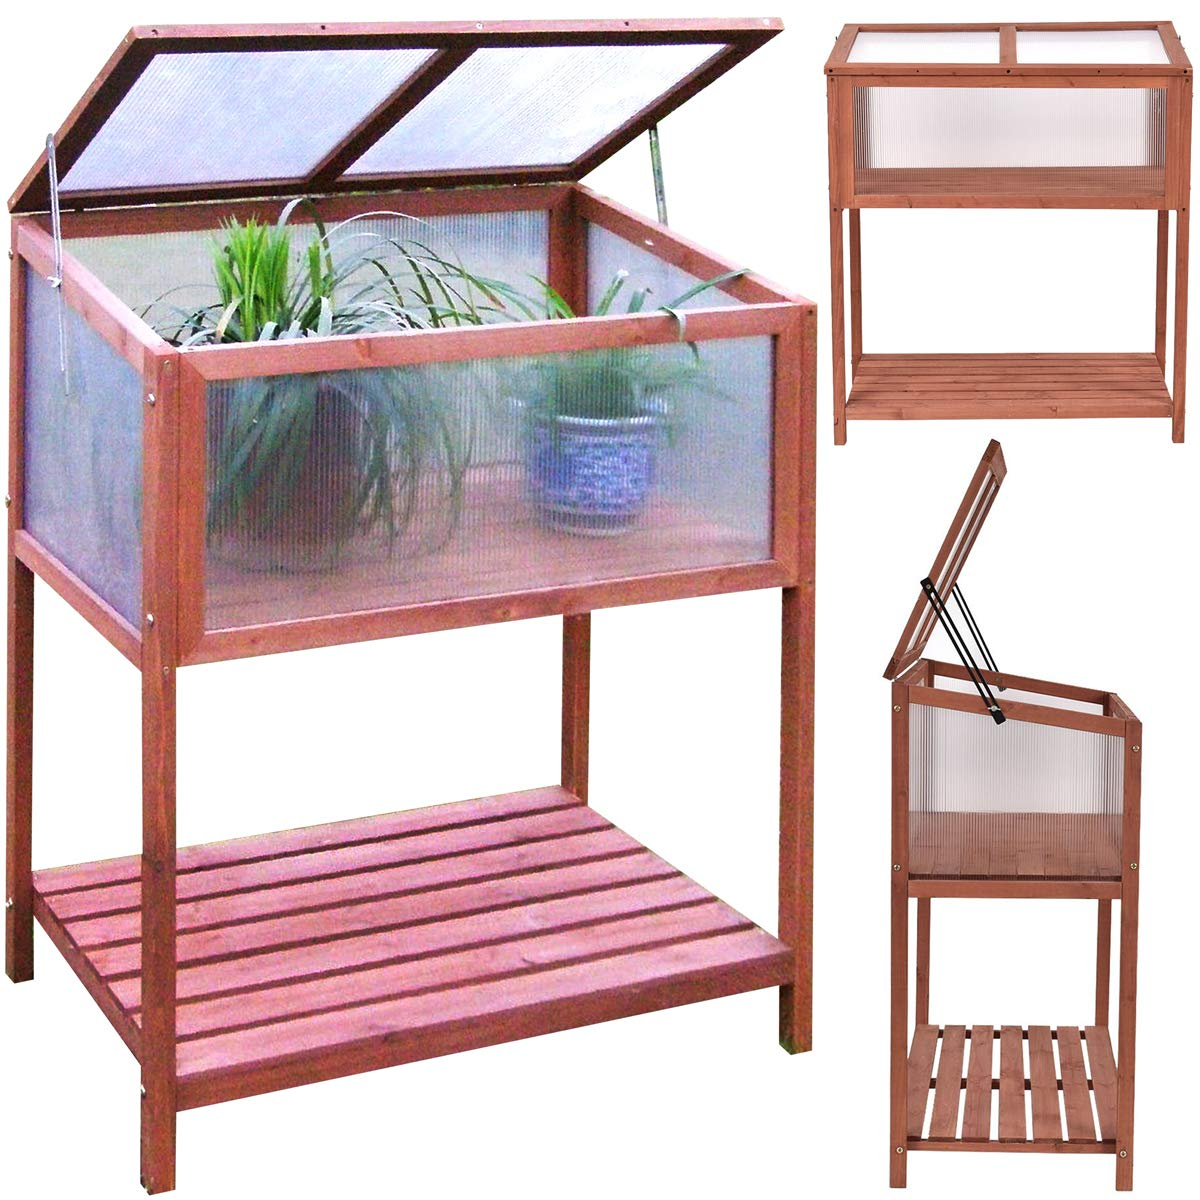 Garden Portable Wooden Greenhouse Cold Frame for Raised Flower Planter Protection 35.5'' Long x 19.5'' Wide x 40.5'' High